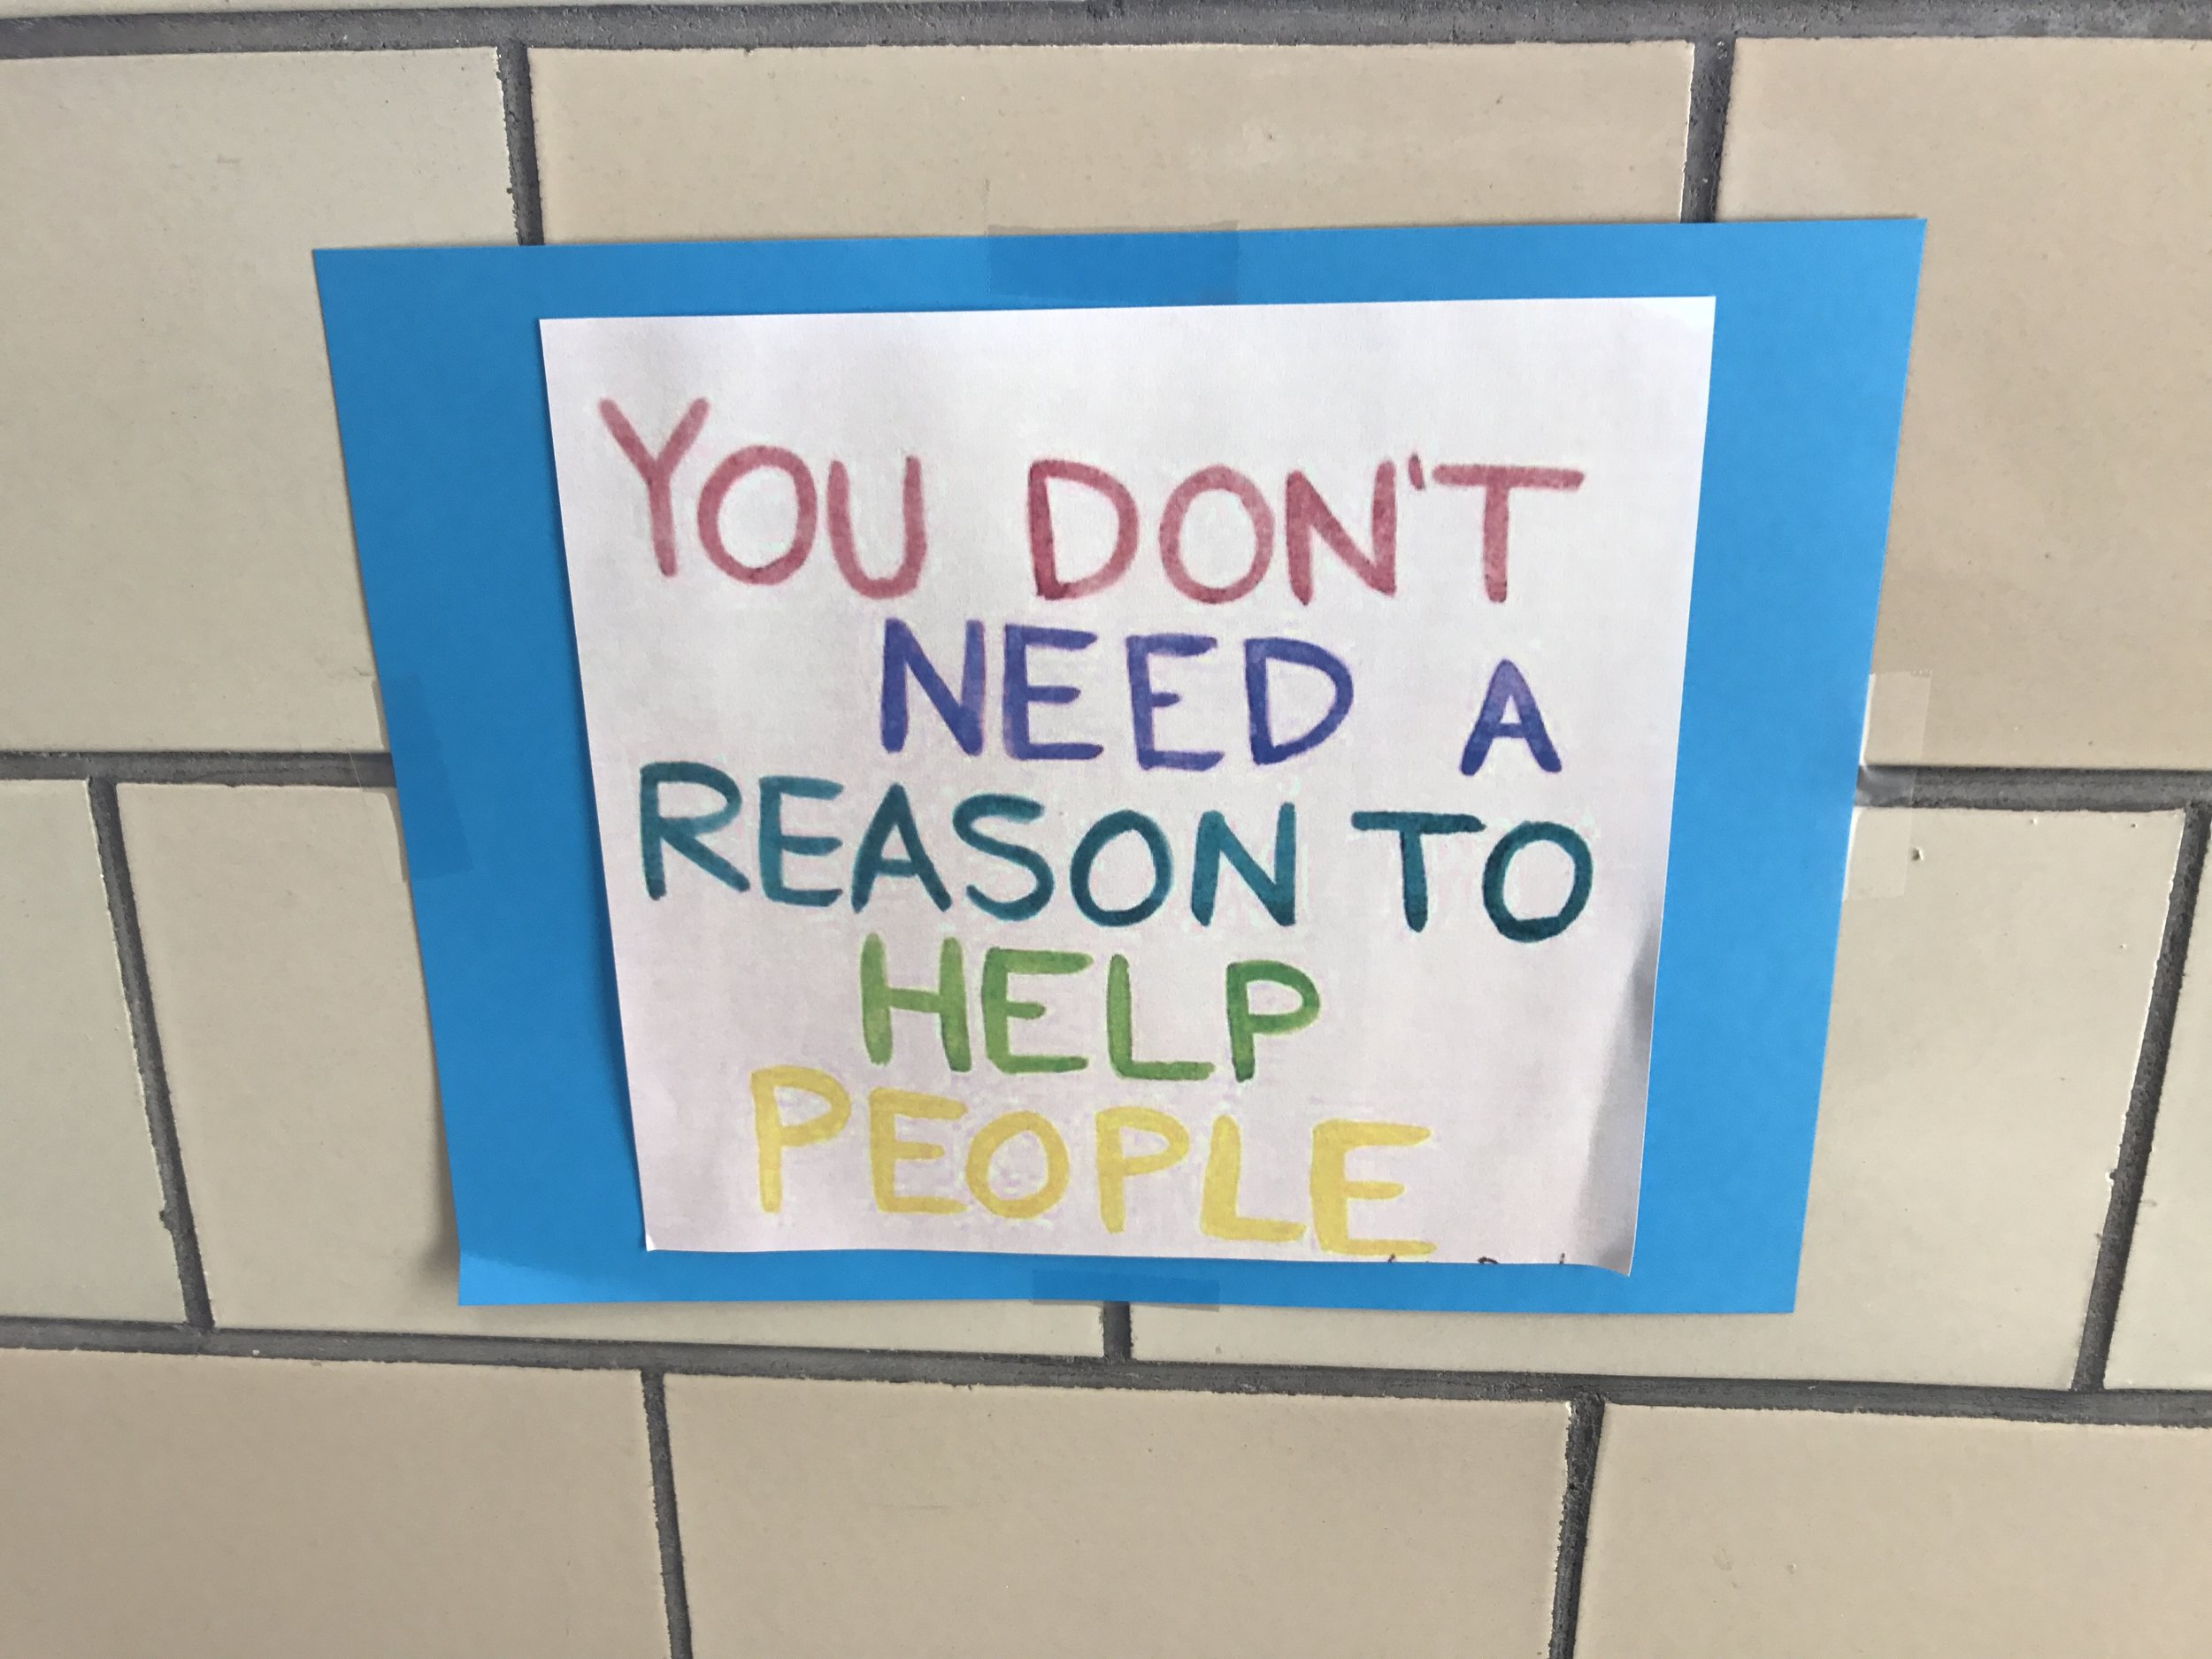 I saw this today hanging on the wall at the kids' school. I loved it. Maybe we can continue to help people even without a natural disaster.